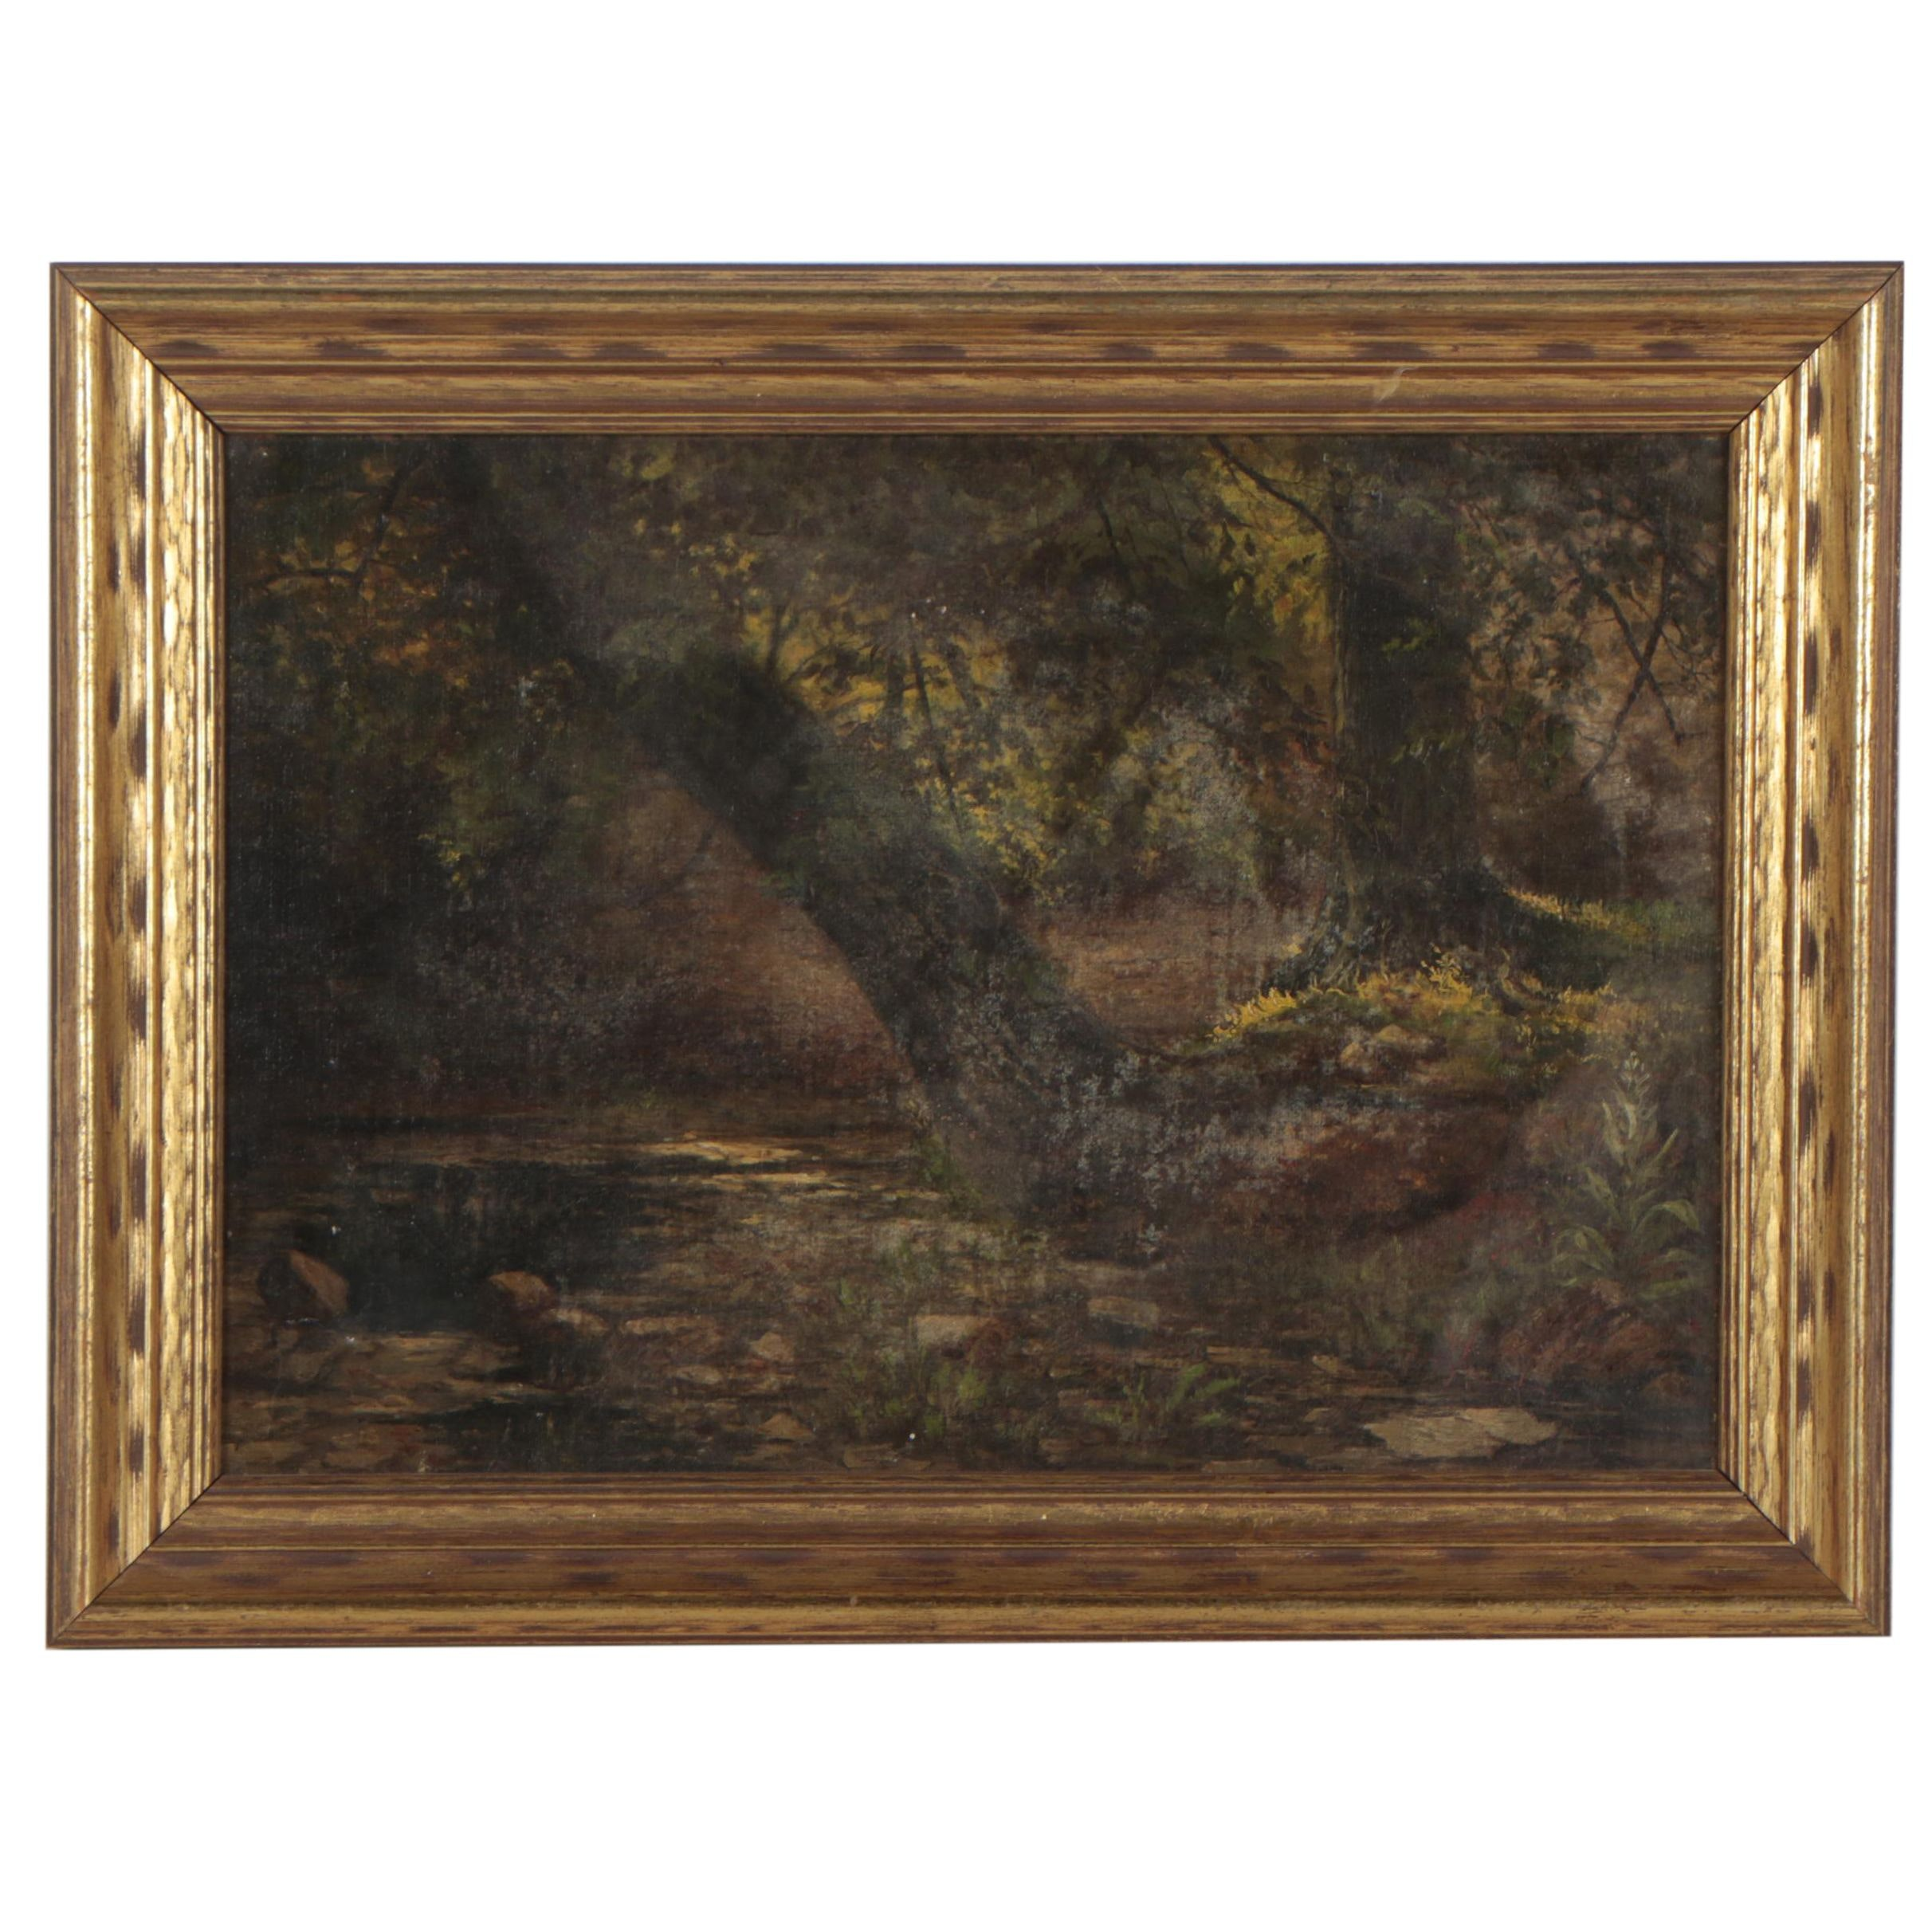 Early 20th Century Oil Painting